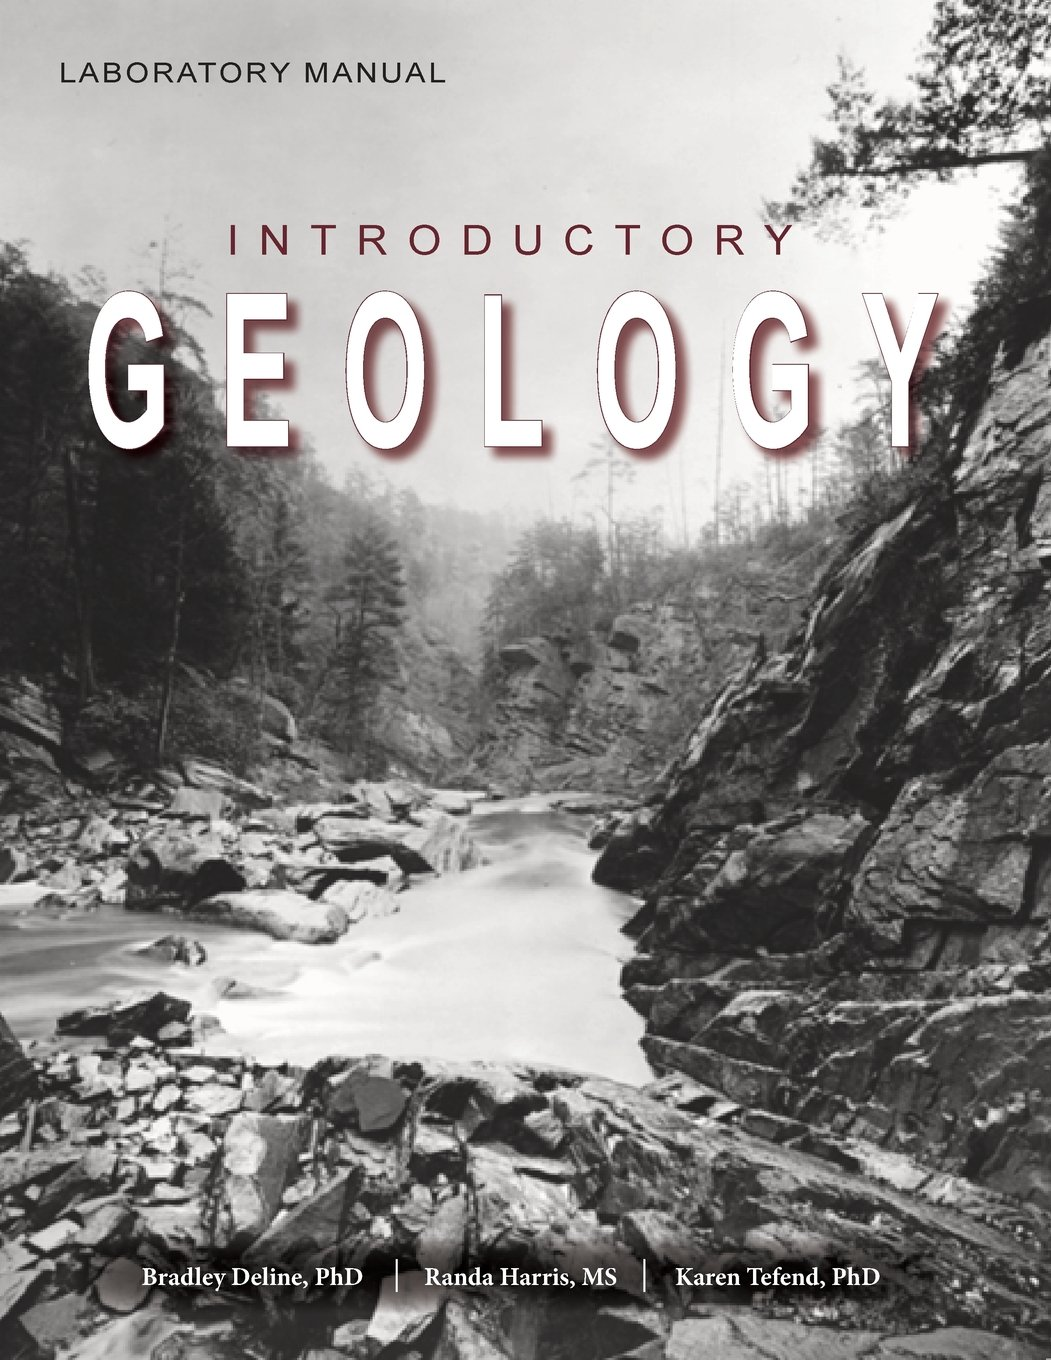 Laboratory Manual for Introductory Geology: Bradley Deline, Randa Harris,  Karen Tefend: 9781940771366: Amazon.com: Books